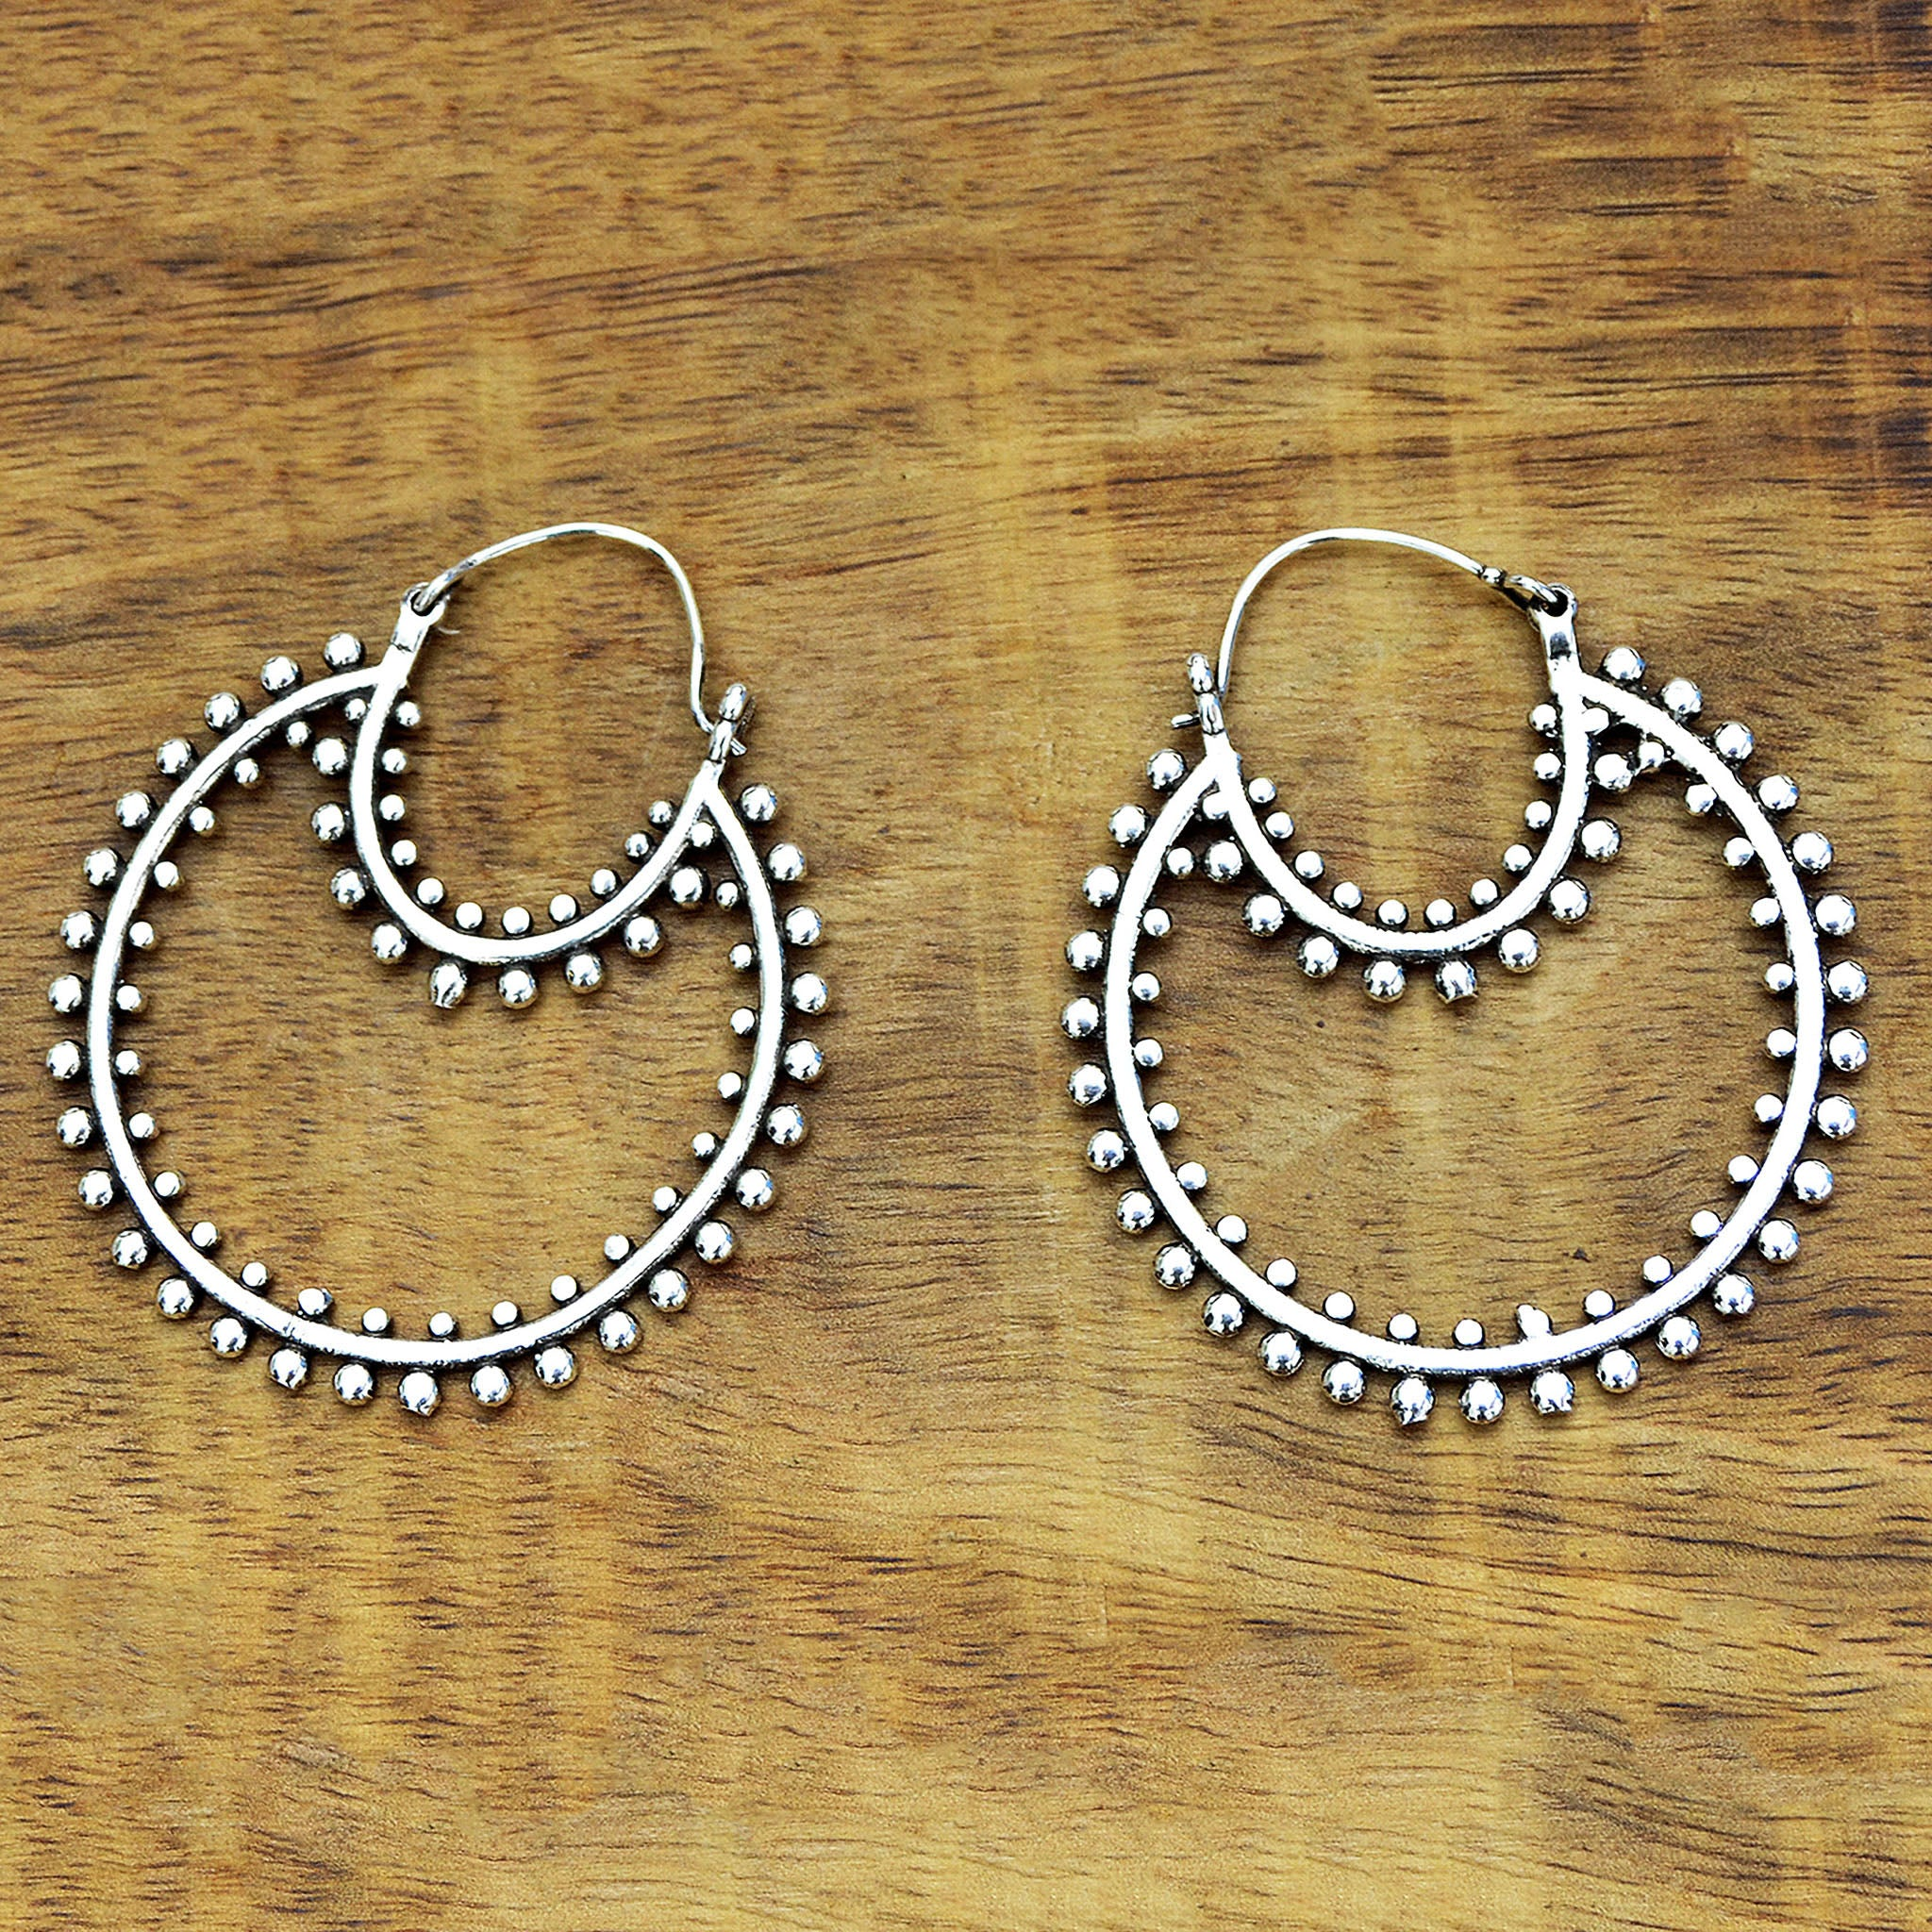 Boho hoop earrings